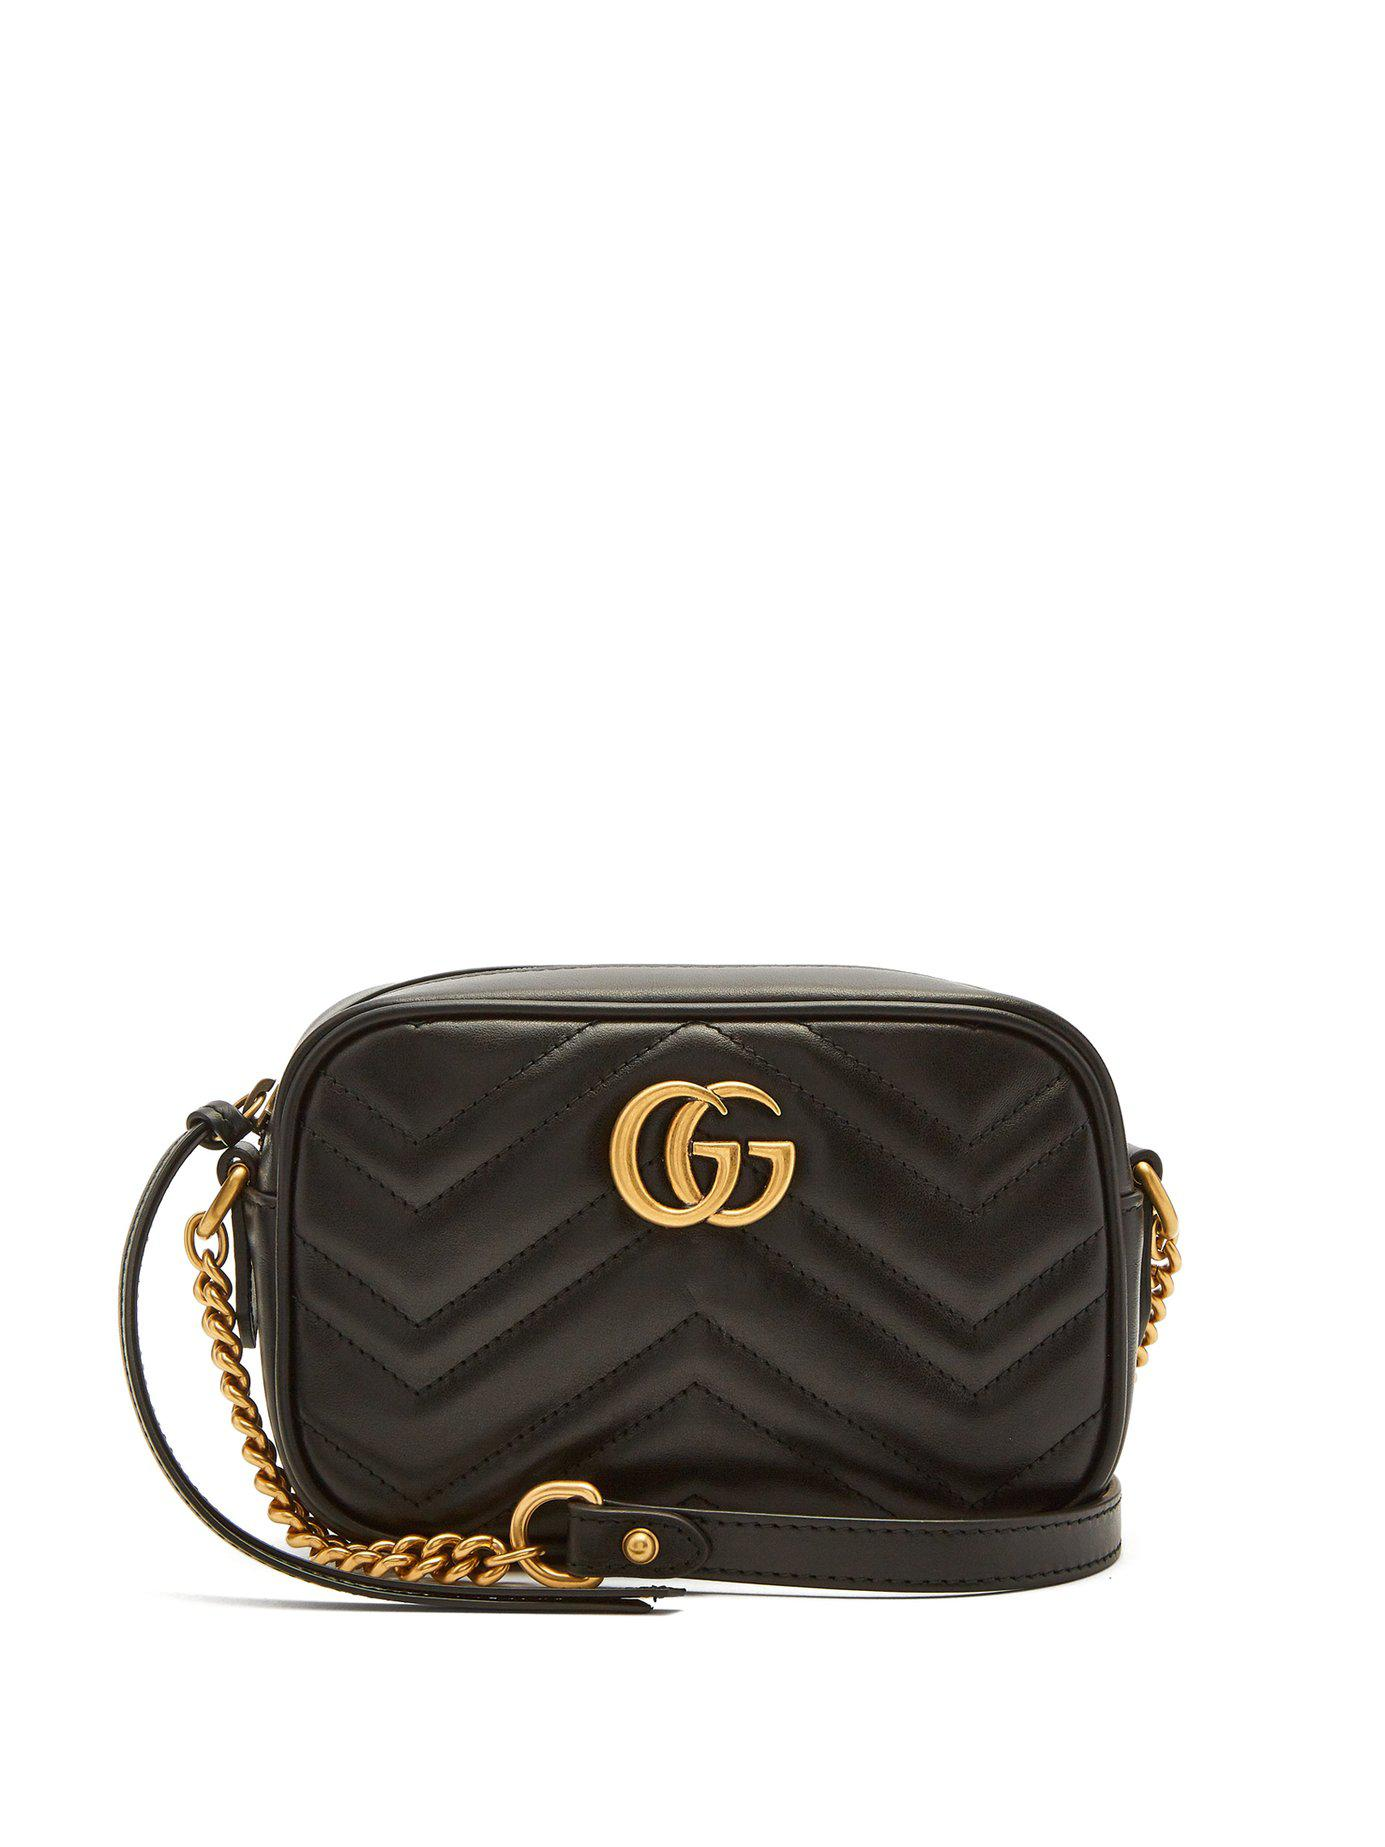 Lyst - Gucci Gg Marmont Mini Quilted Leather Cross Body Bag in Black cd25c03496a54